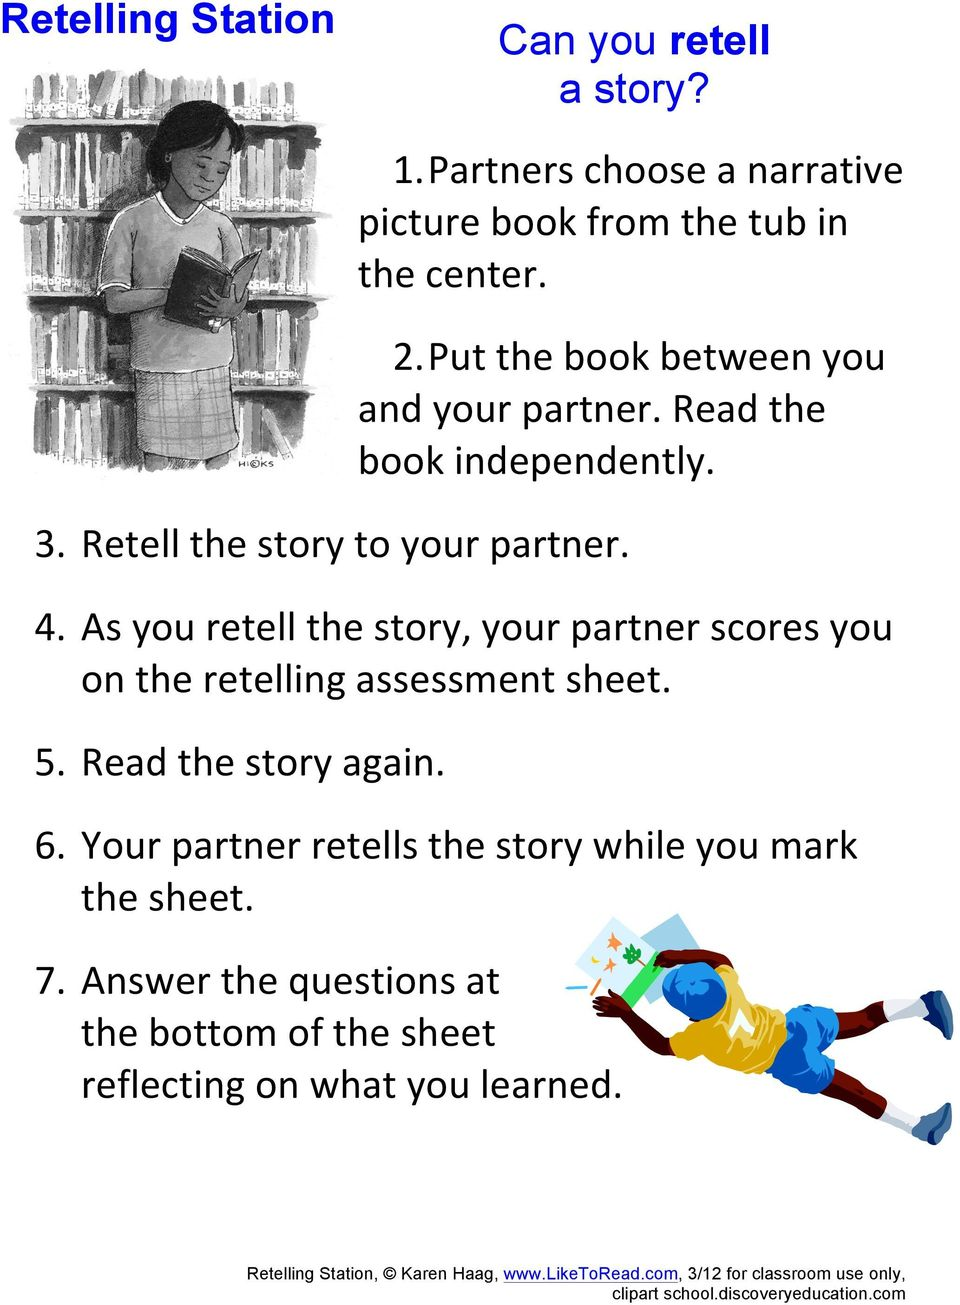 As you retell the story, your partner scores you on the retelling assessment sheet. 5. Read the story again. 6.